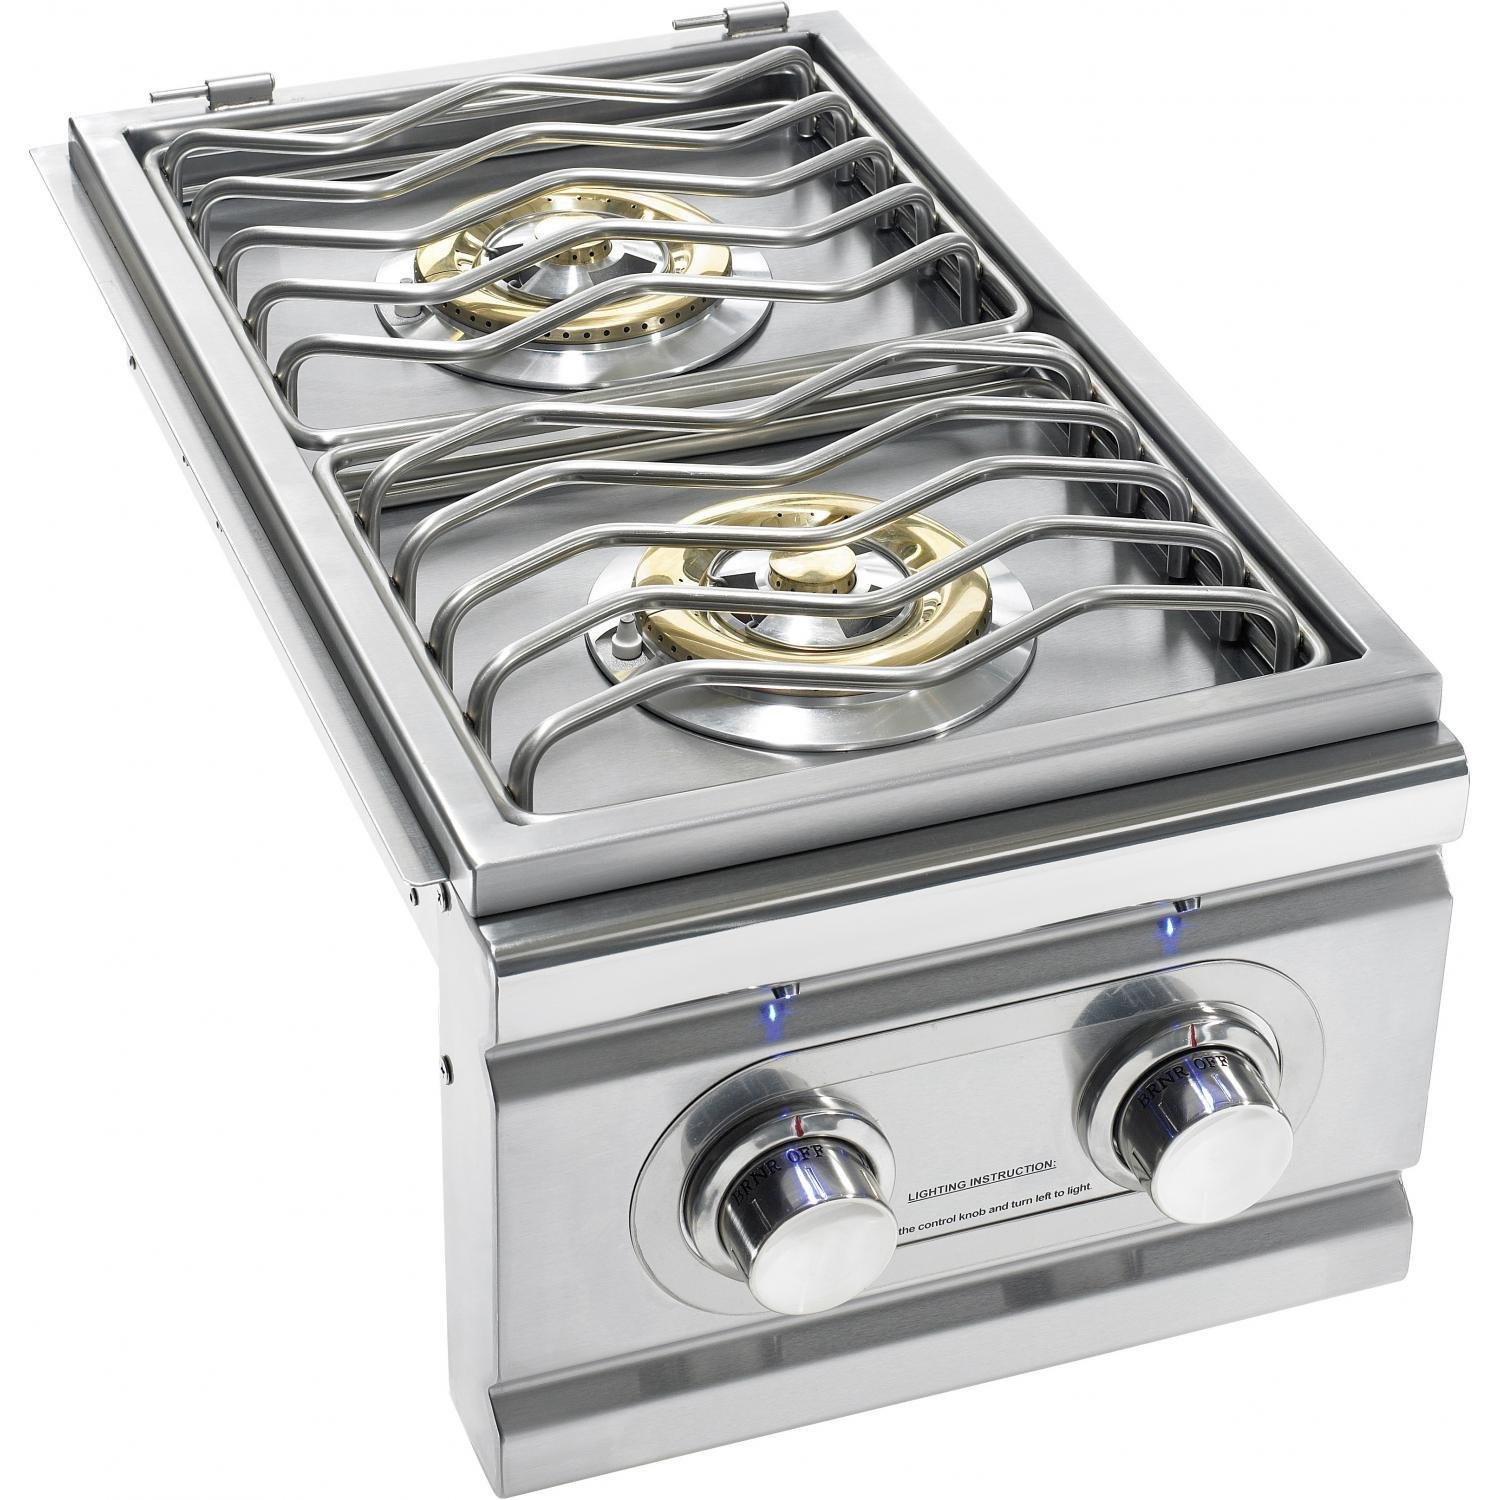 Summerset Trl Built-in Natural Gas Double Side Burner - Trlsb-2-ng